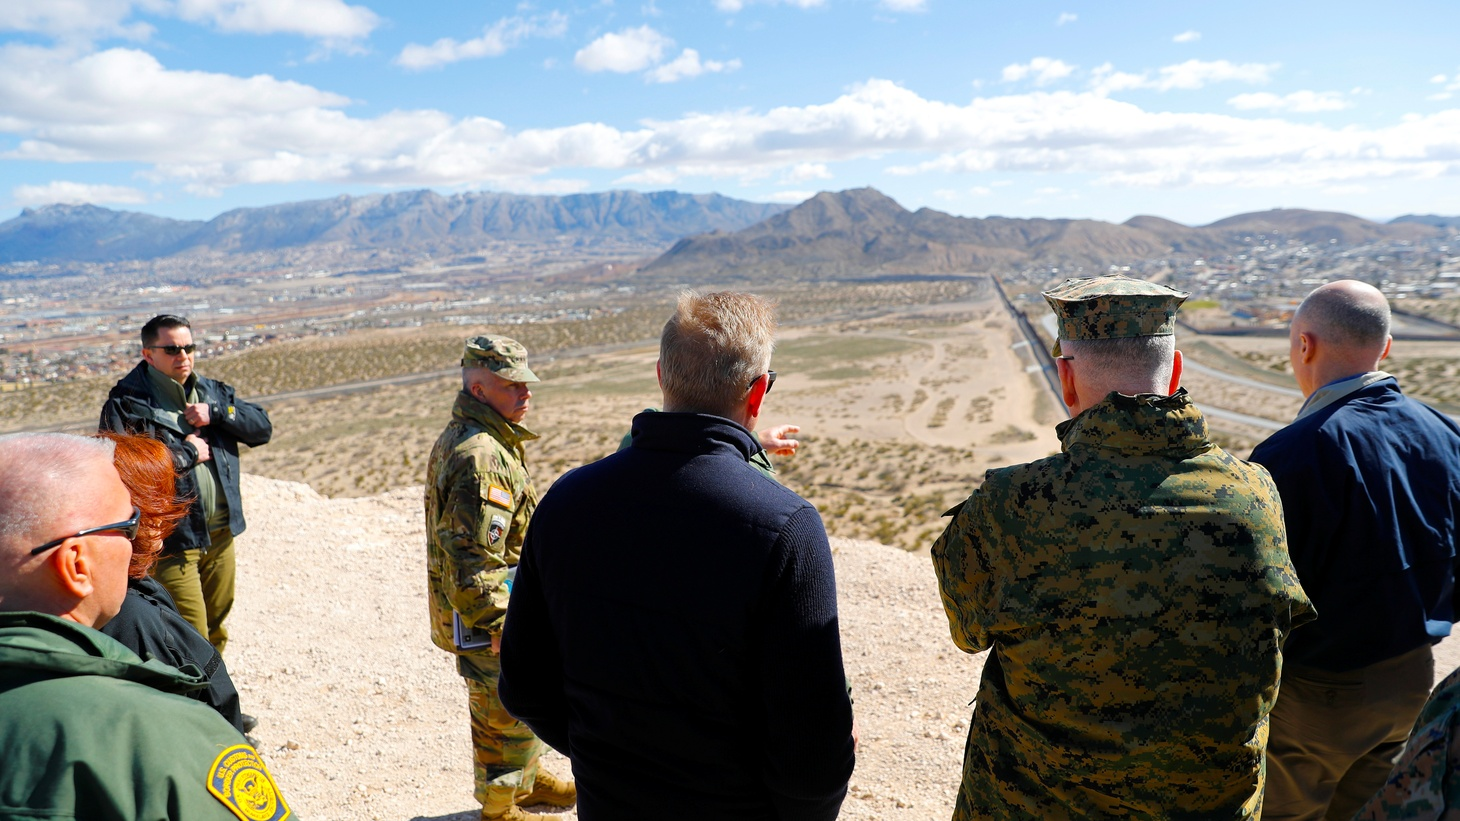 U.S. Acting Secretary of Defense Patrick Shanahan and Joint Chiefs Chairman Gen. Joseph Dunford during a tour of the US-Mexico border at Santa Teresa Station in Sunland Park, N.M., U.S. February 23, 2019.